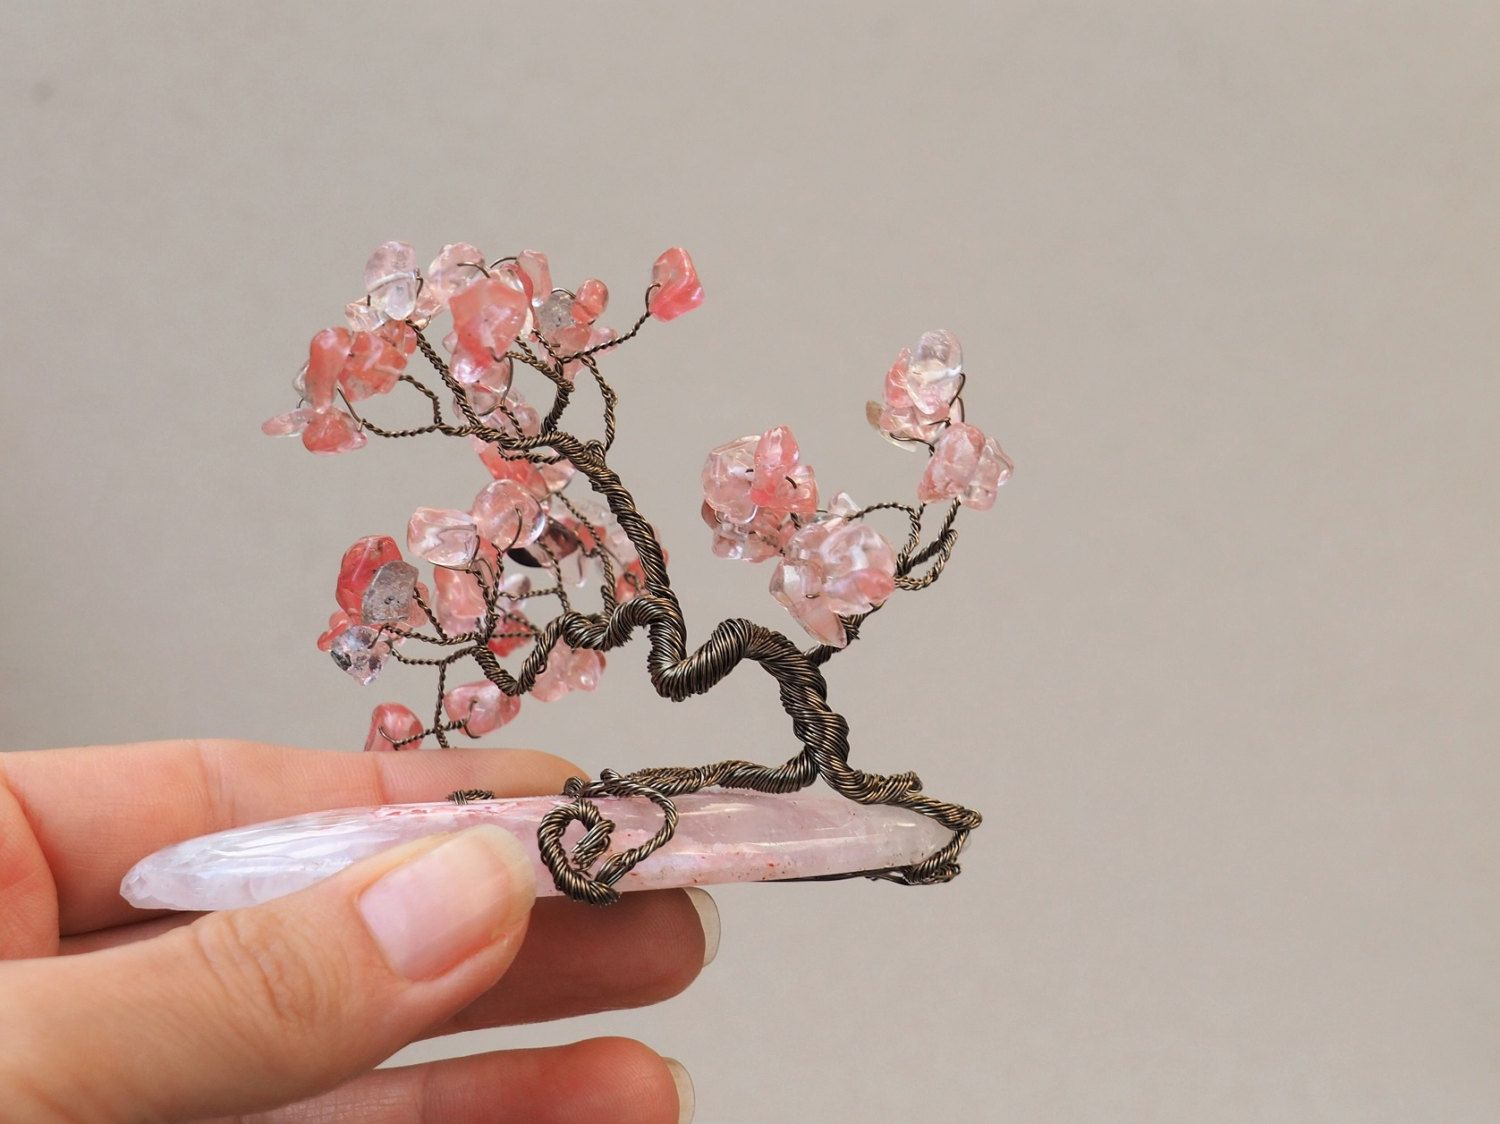 Wire Bonsai/Gifts under 40/Pink tree/Wire Tree/Tree of Life/Wire tree sculpture/Miniature tree/New year's gift/Gemstone tree of life/Zen by Ianira on Etsy